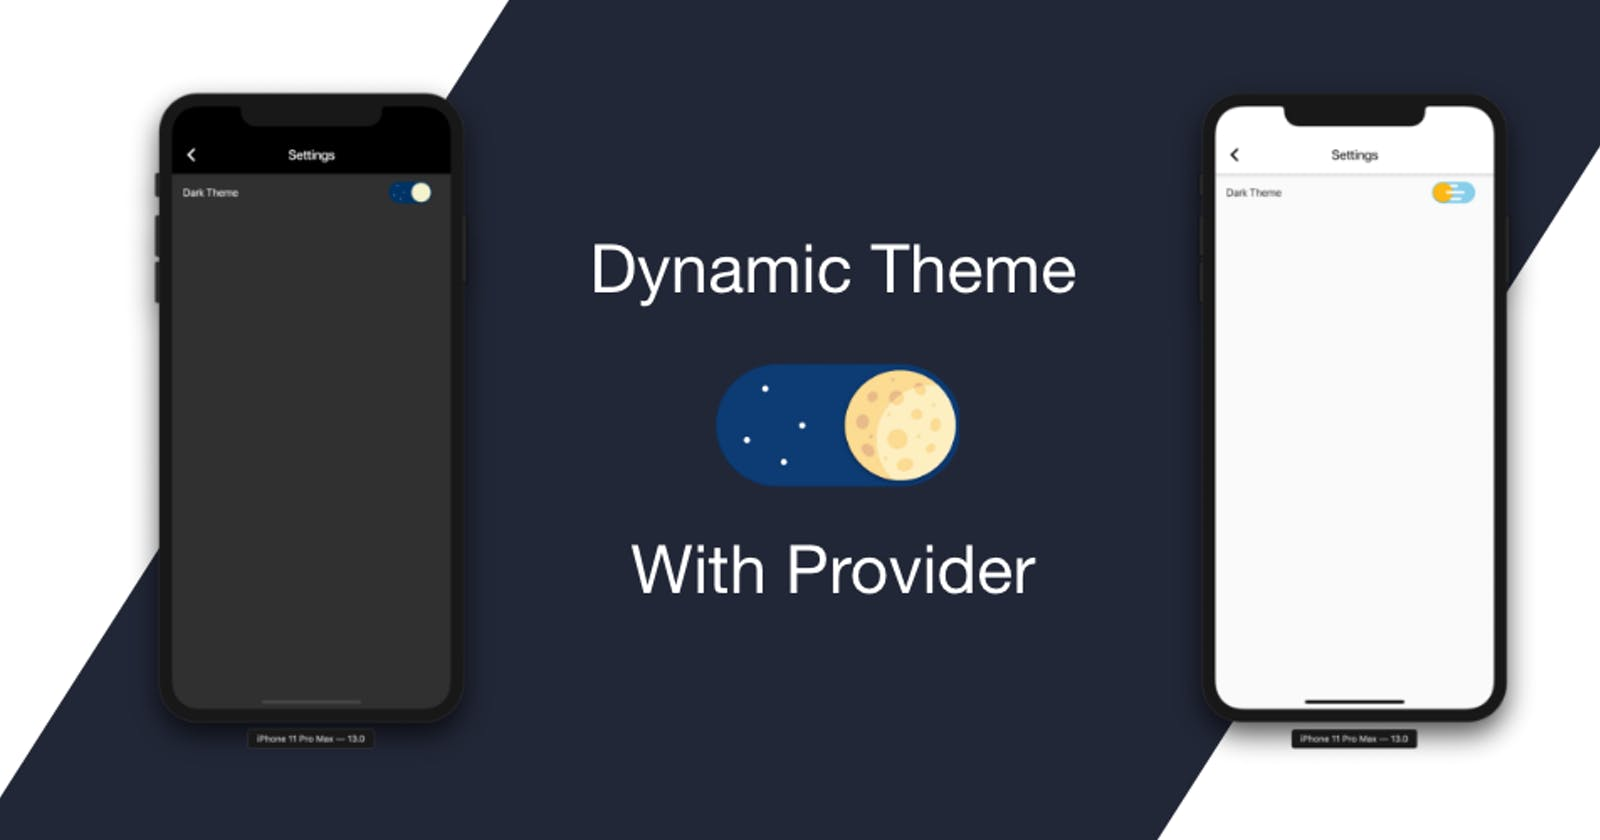 How To Create a Dynamic Theme in Flutter Using Provider